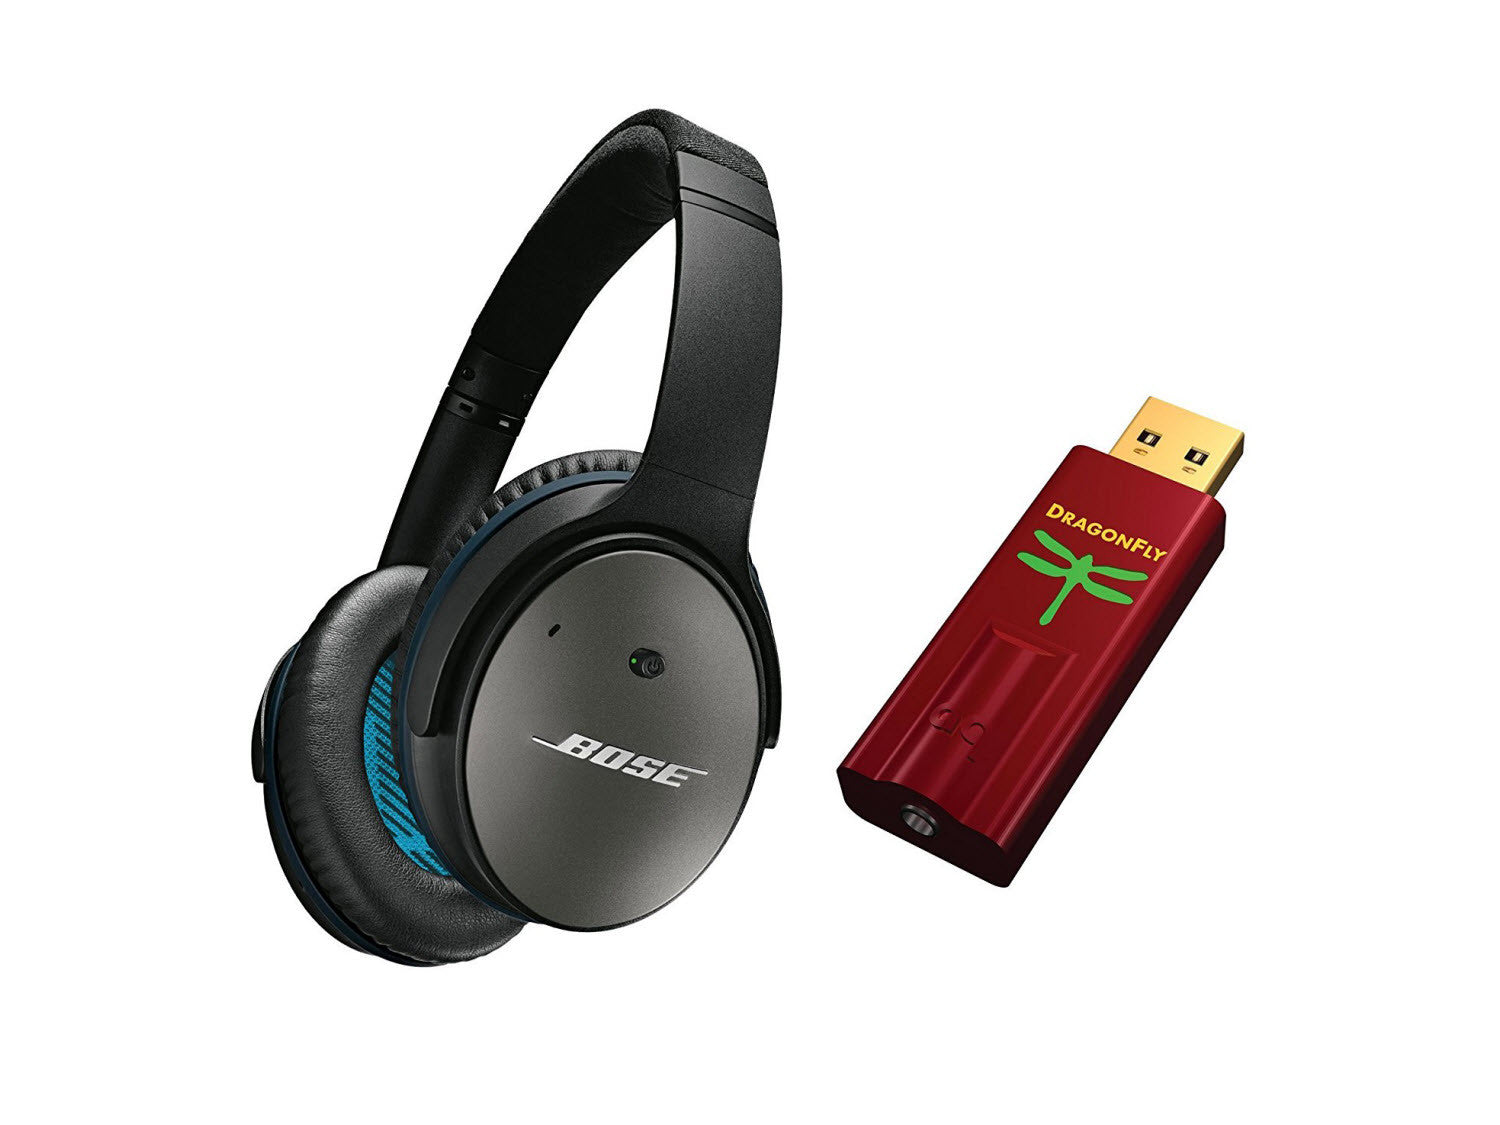 ccf9fc524d0 Bose QuietComfort 25 Acoustic Noise Cancelling Headphones DragonFly Re –  The Connection Team